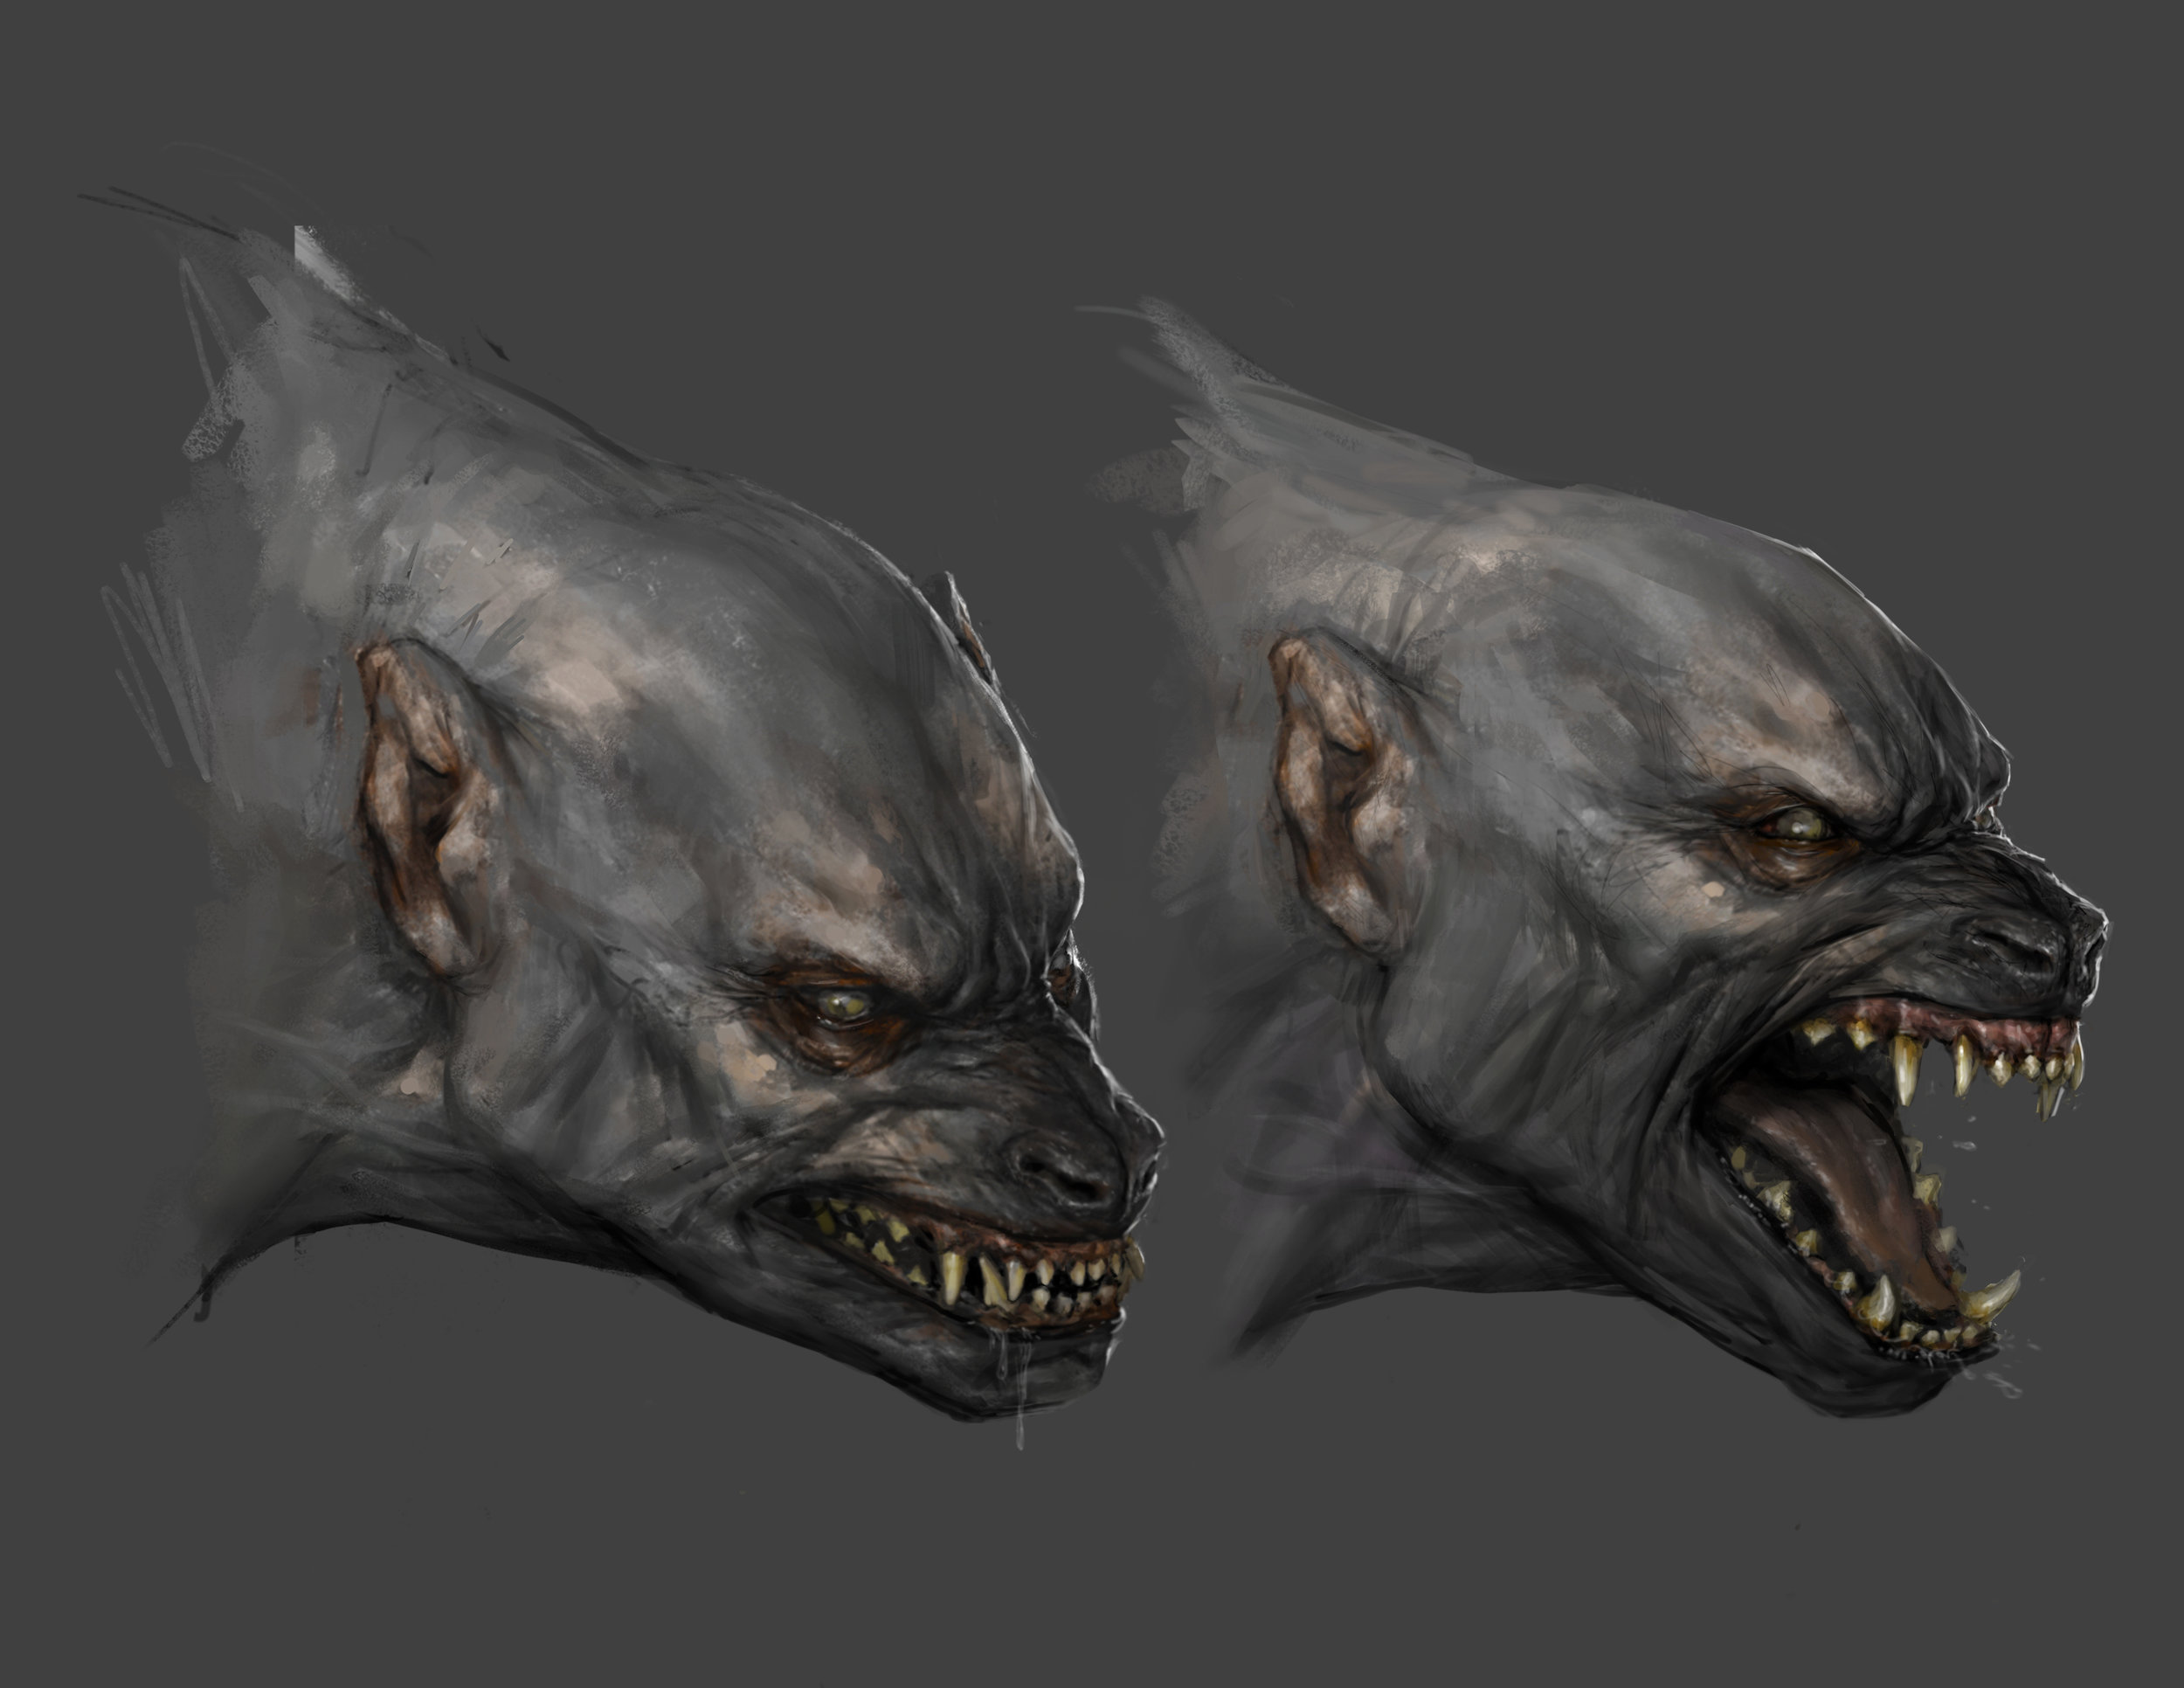 lycan_soldier_head_sketch_1.jpg